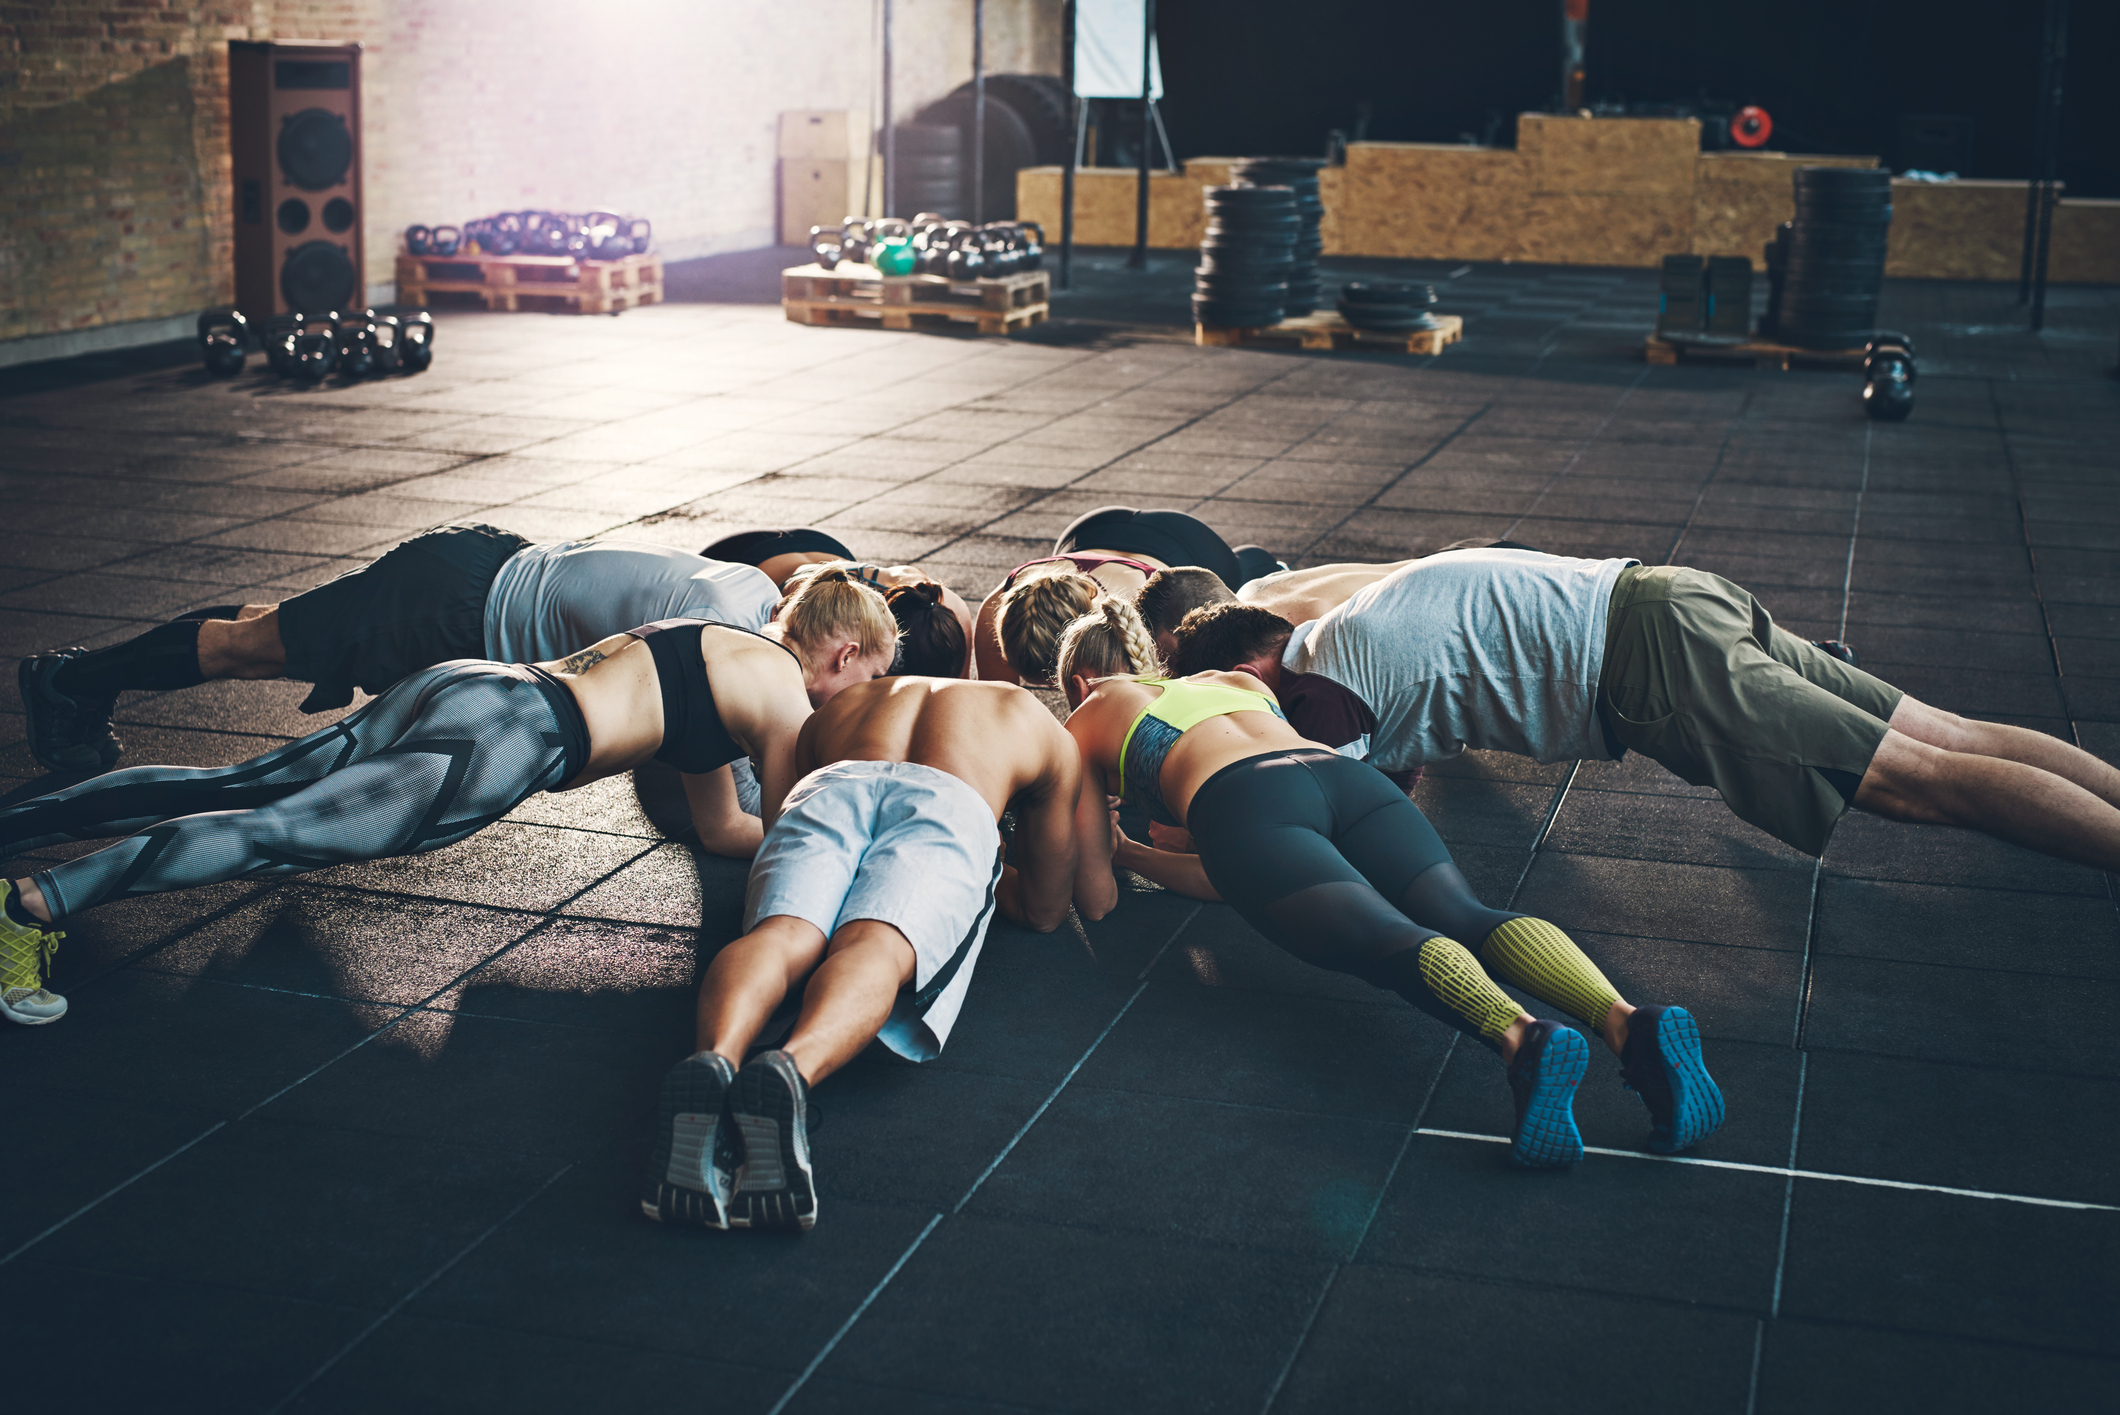 men and women planking together